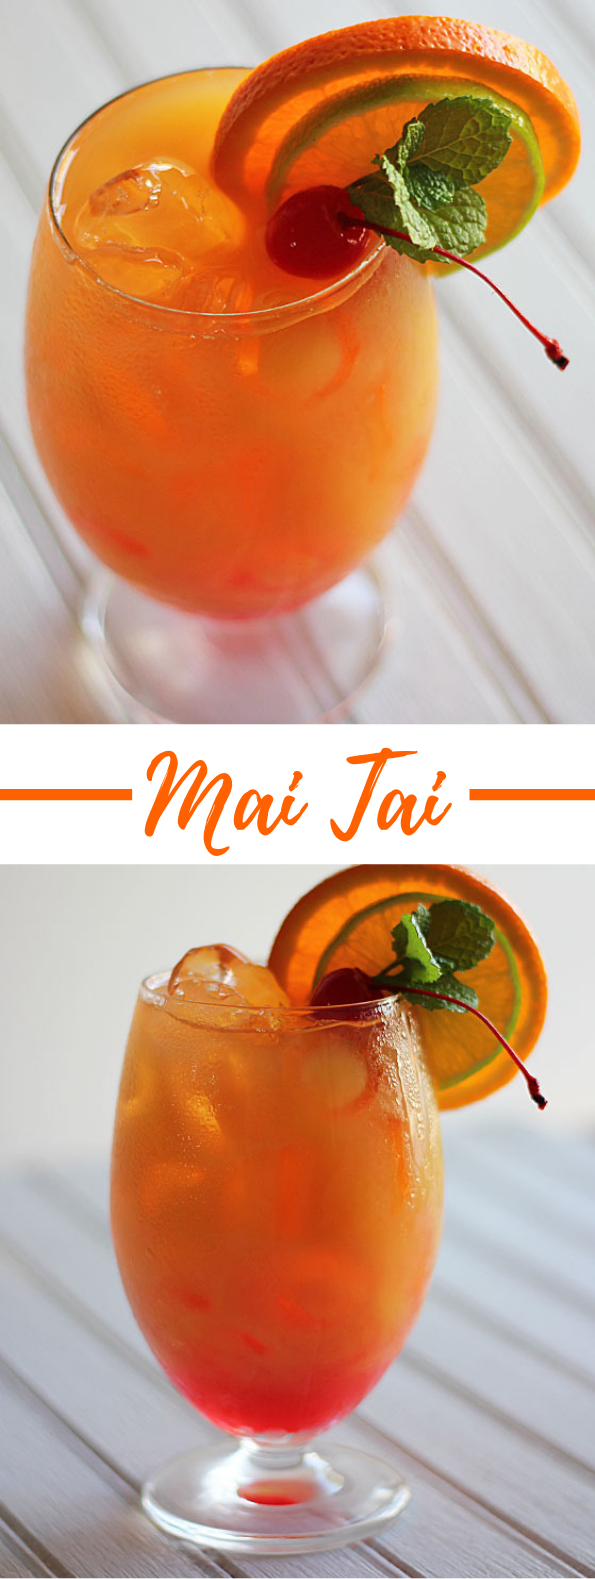 MAI TAI #drink #cocktail